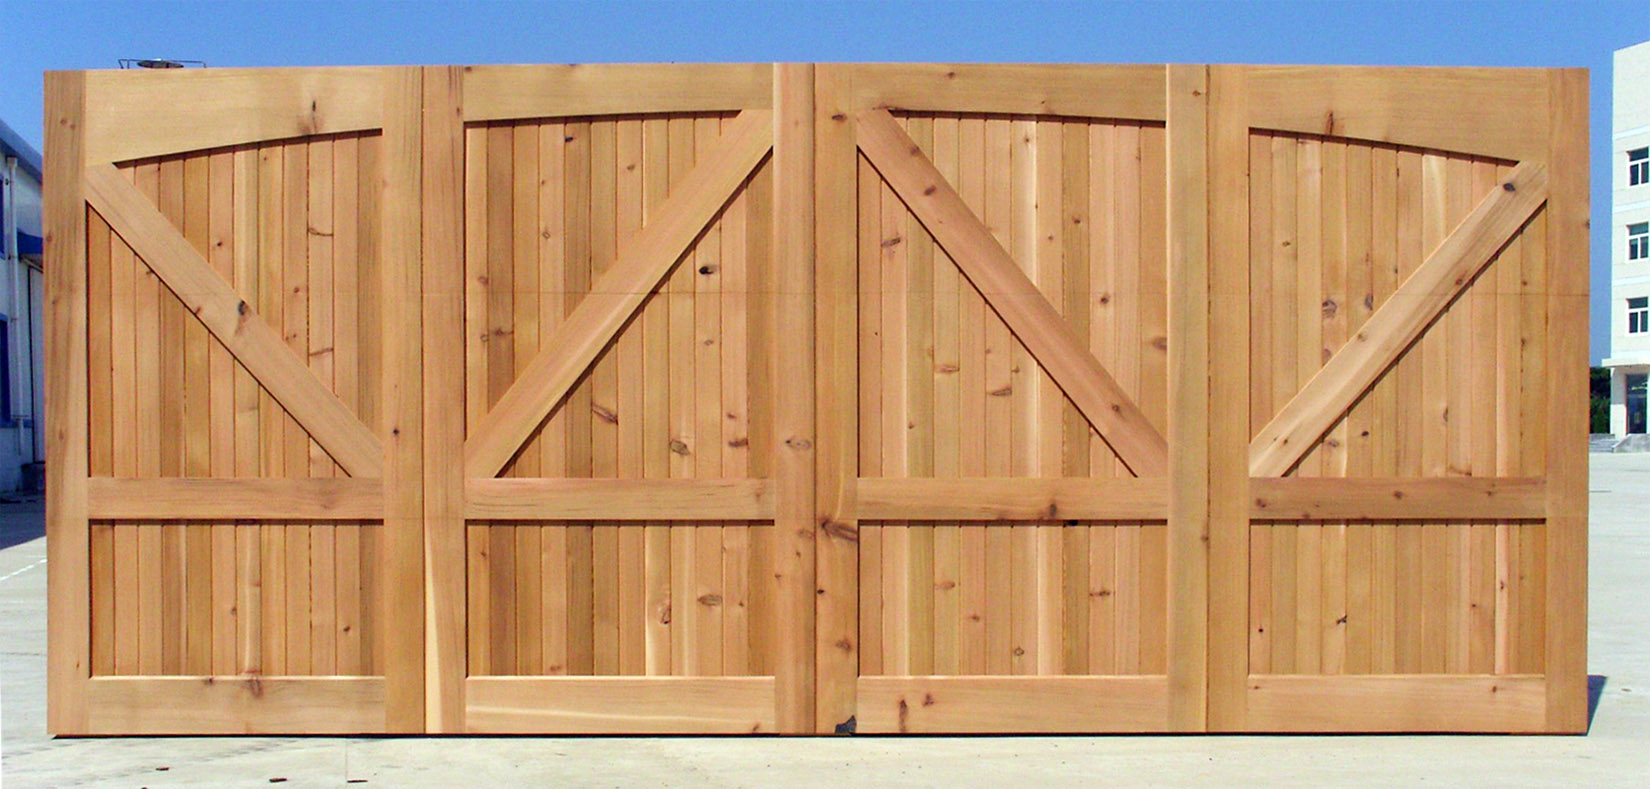 Wood overhead garage doors for sale in pennsylvania for Cedar wood garage doors price